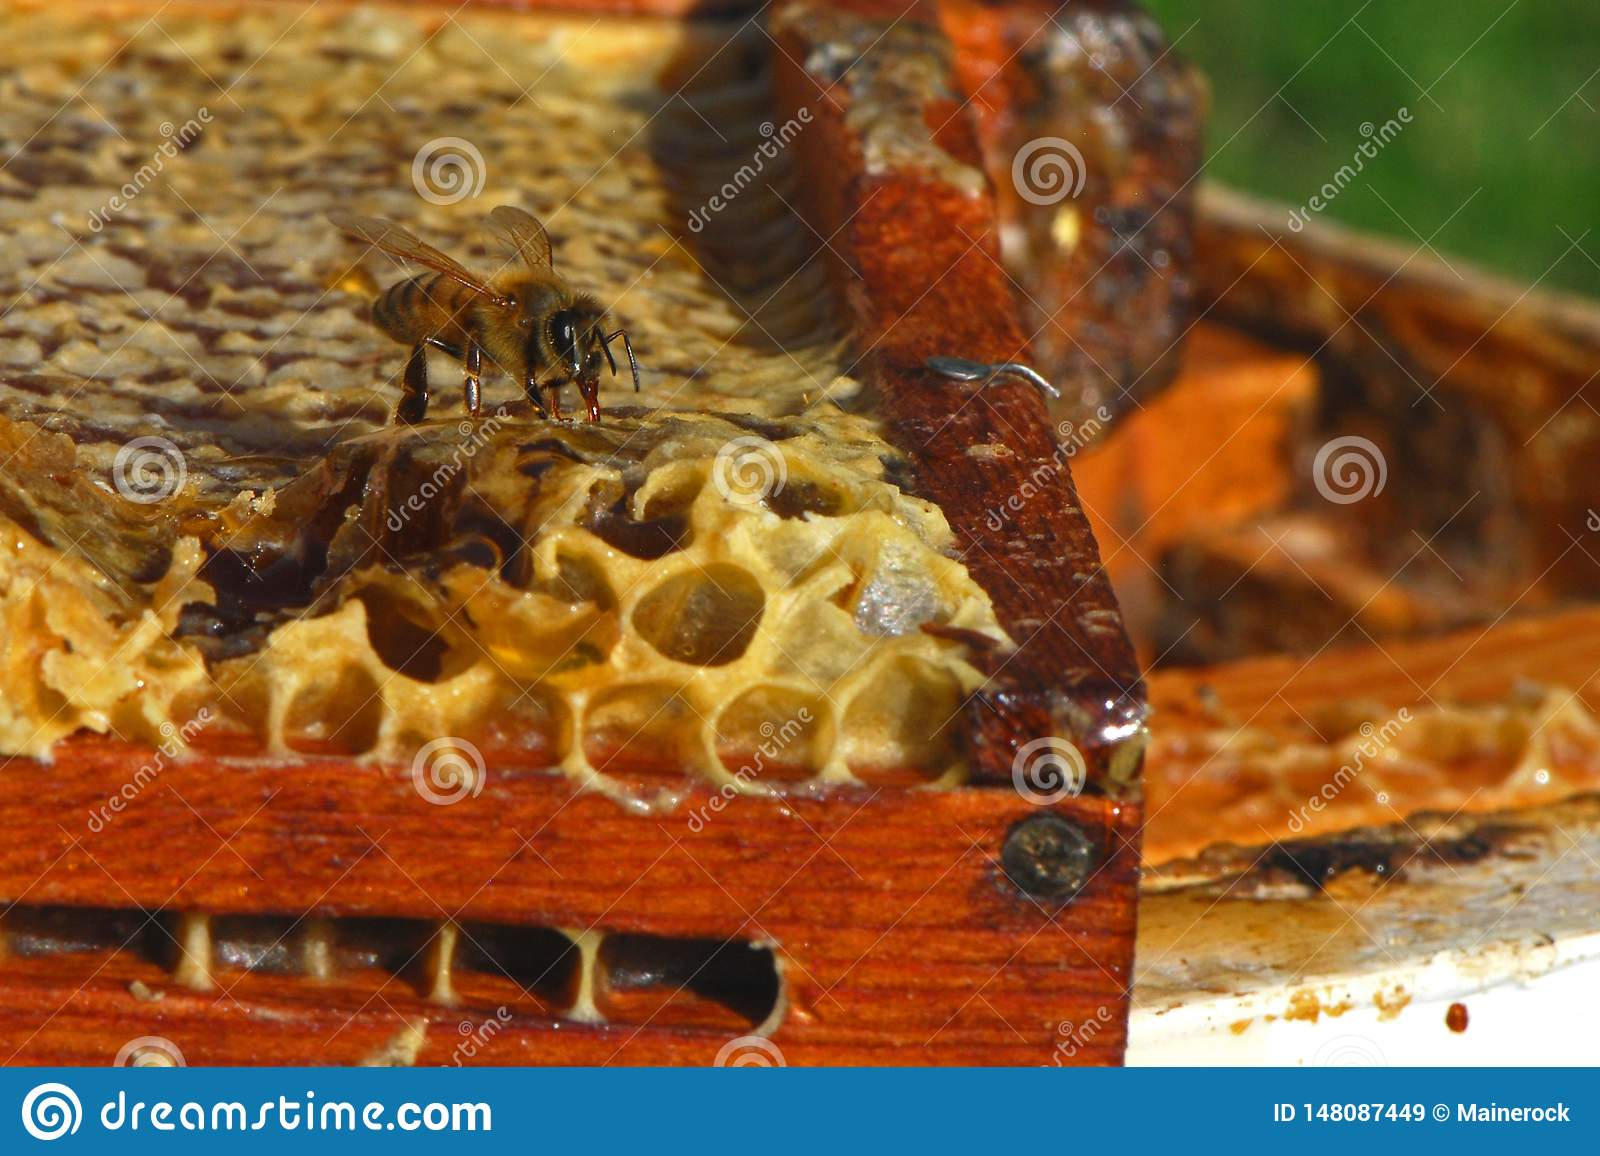 A bee on honeycomb